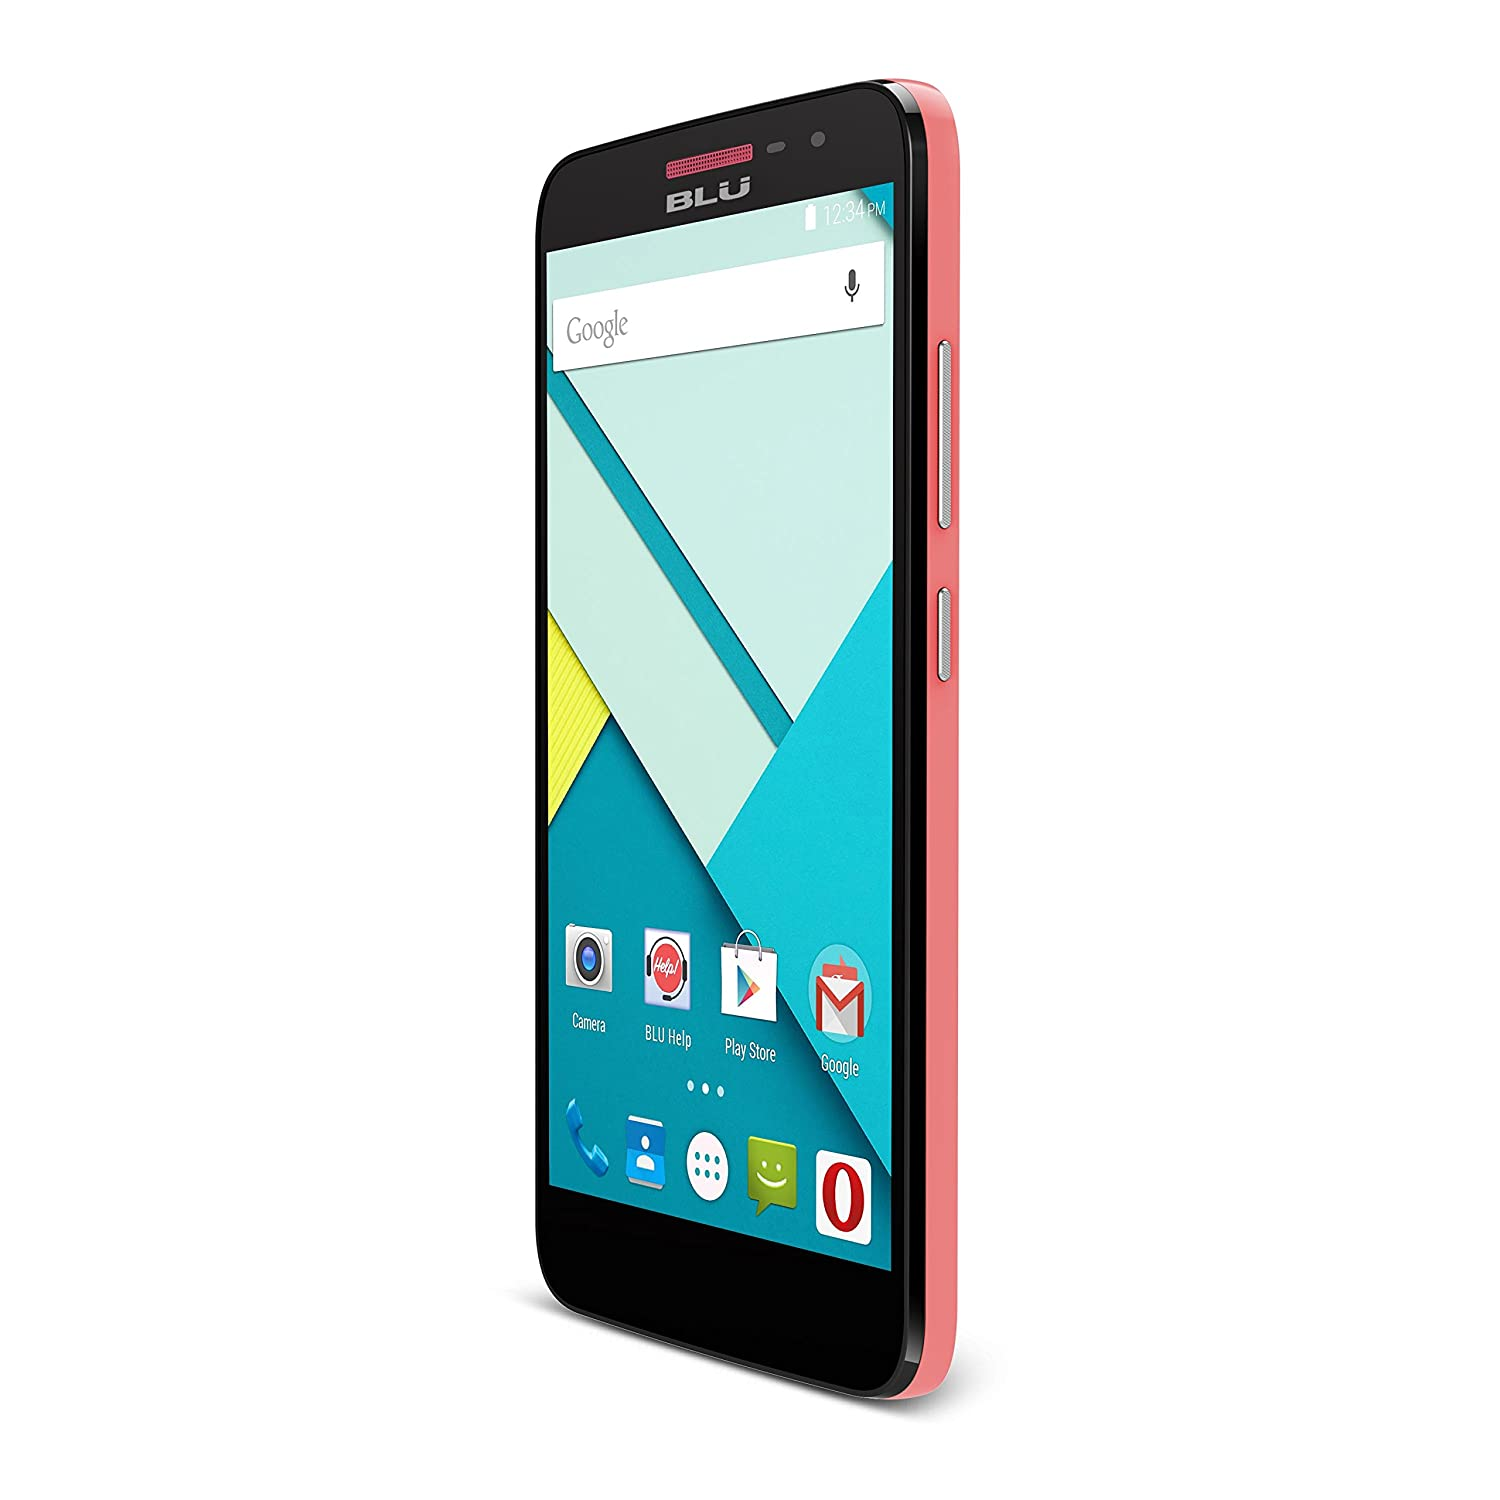 C cricket phones for sale existing customers - Amazon Com Blu Studio C 5 0 Inch Android Smartphone With Lollipop Os Unlocked Pink Cell Phones Accessories